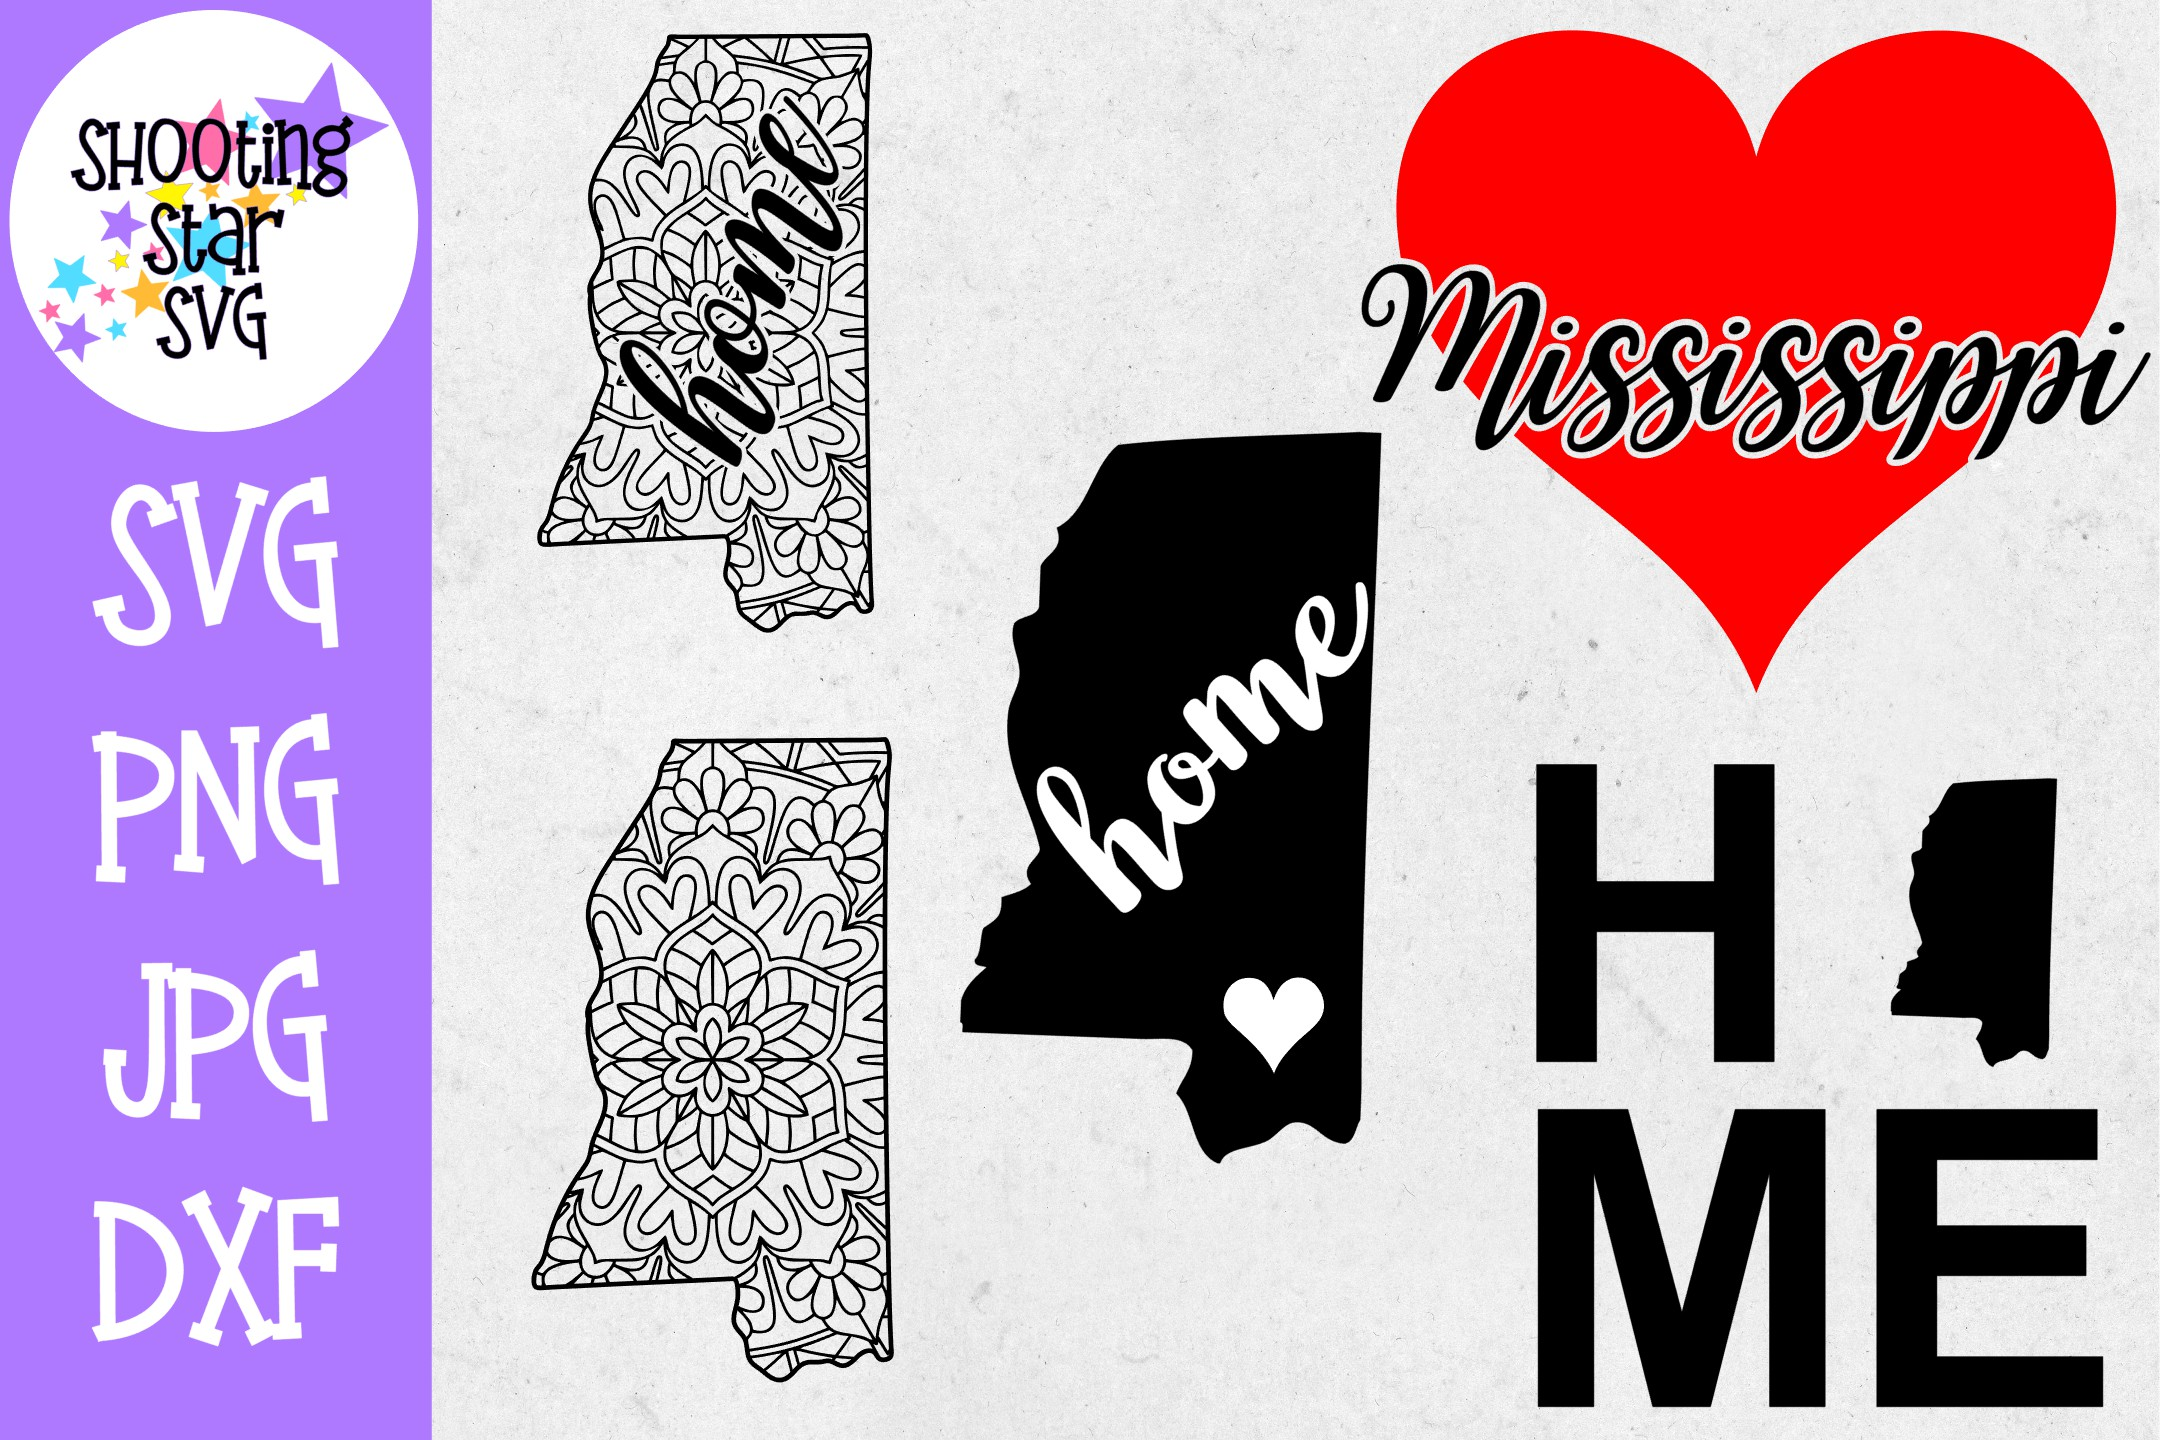 Mississippi US State SVG Decal Bundle - 50 States SVG example image 1